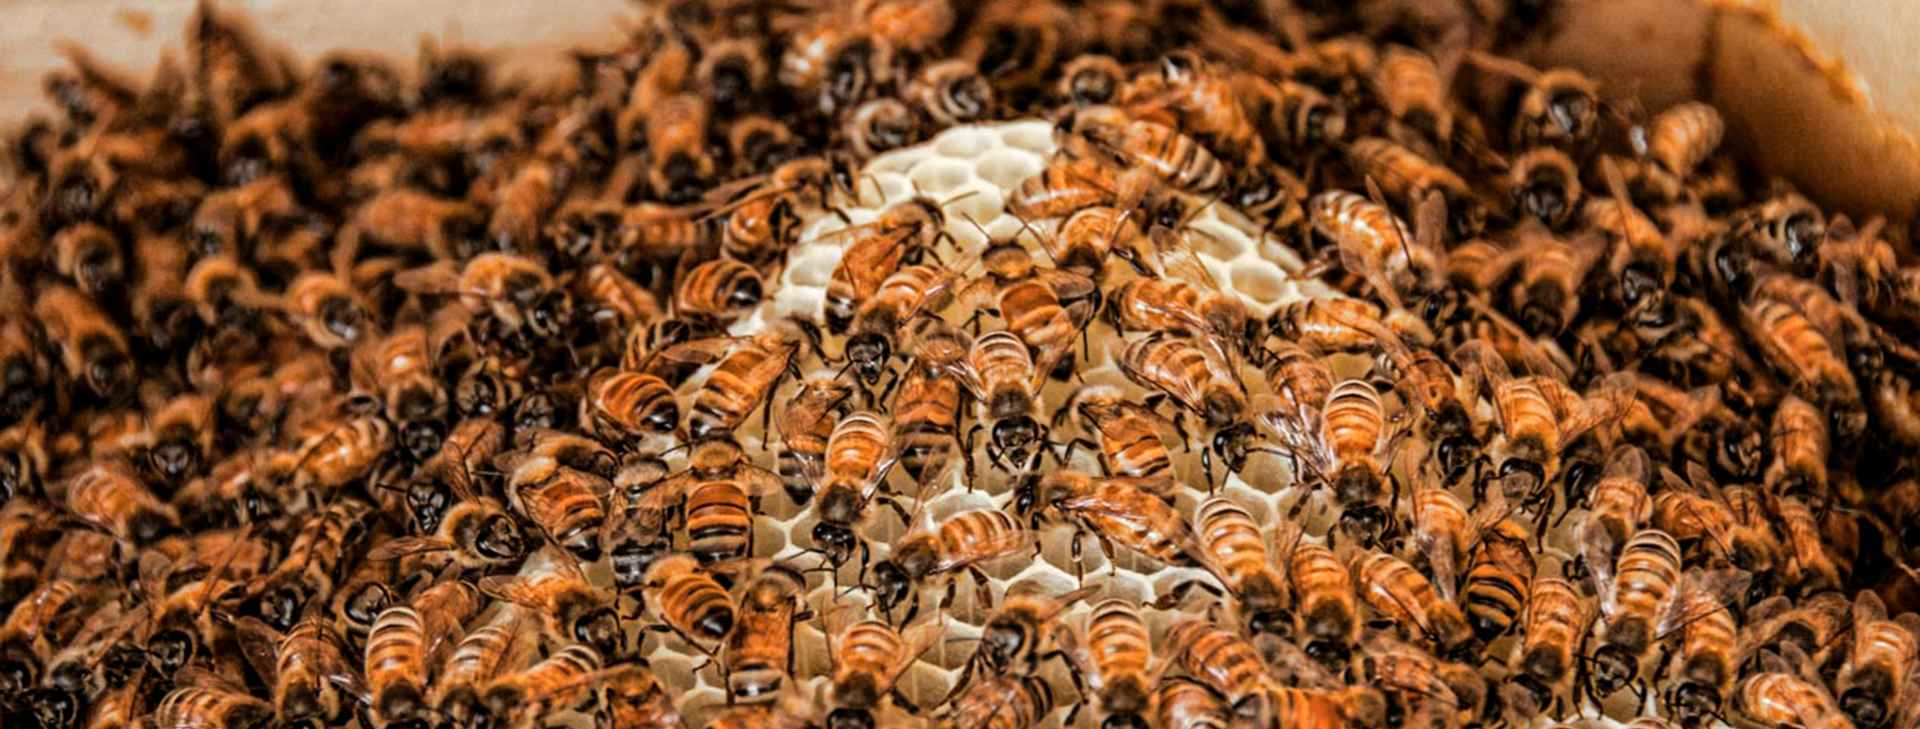 honey-bees-Edit